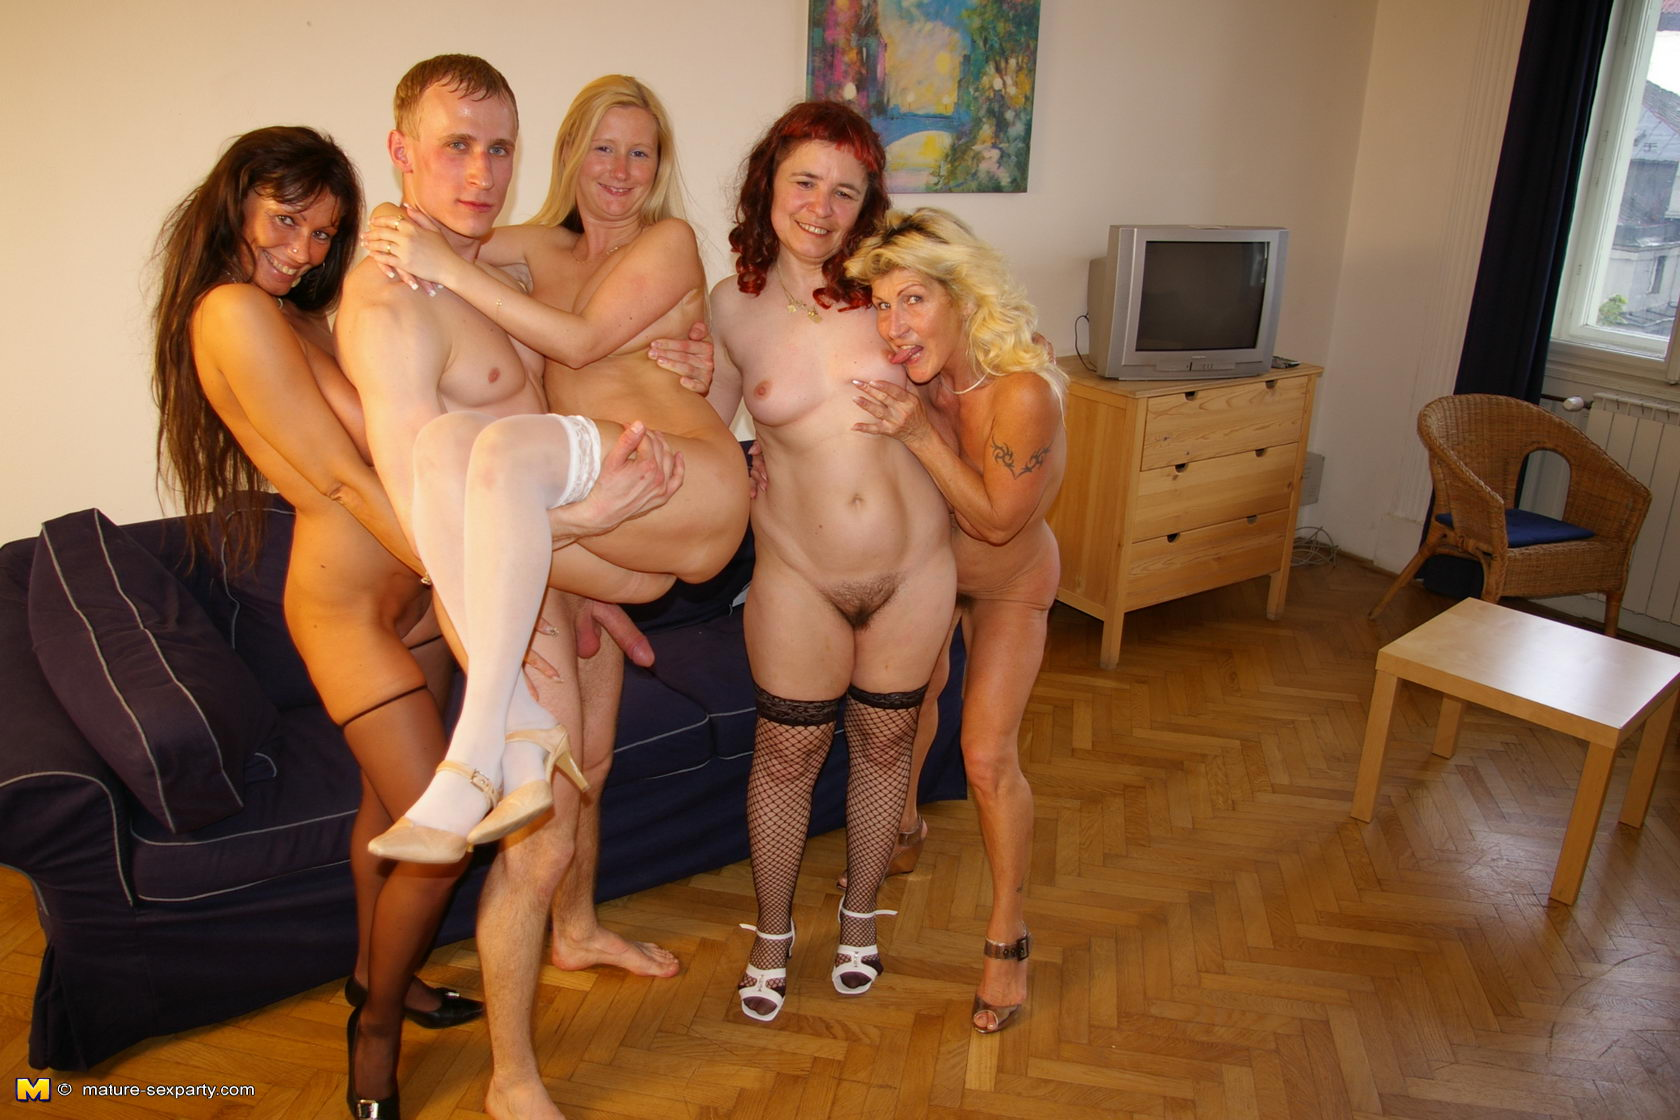 Nude couple sex party remarkable